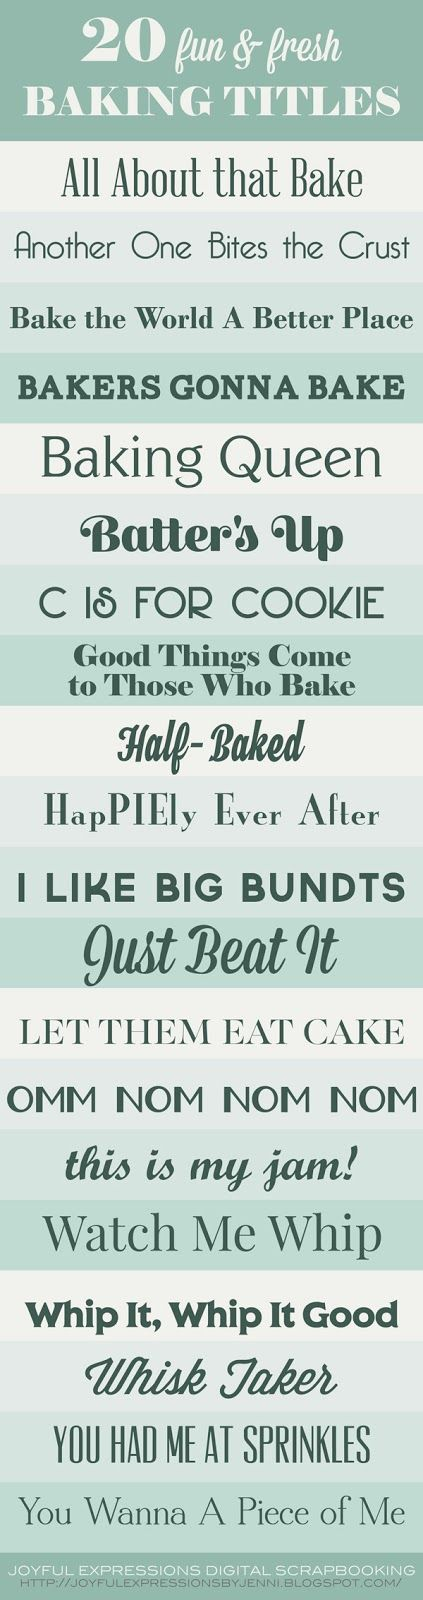 20 Fun & Fresh Baking Themed Scrapbooking Page Titles from Joyful Expressions